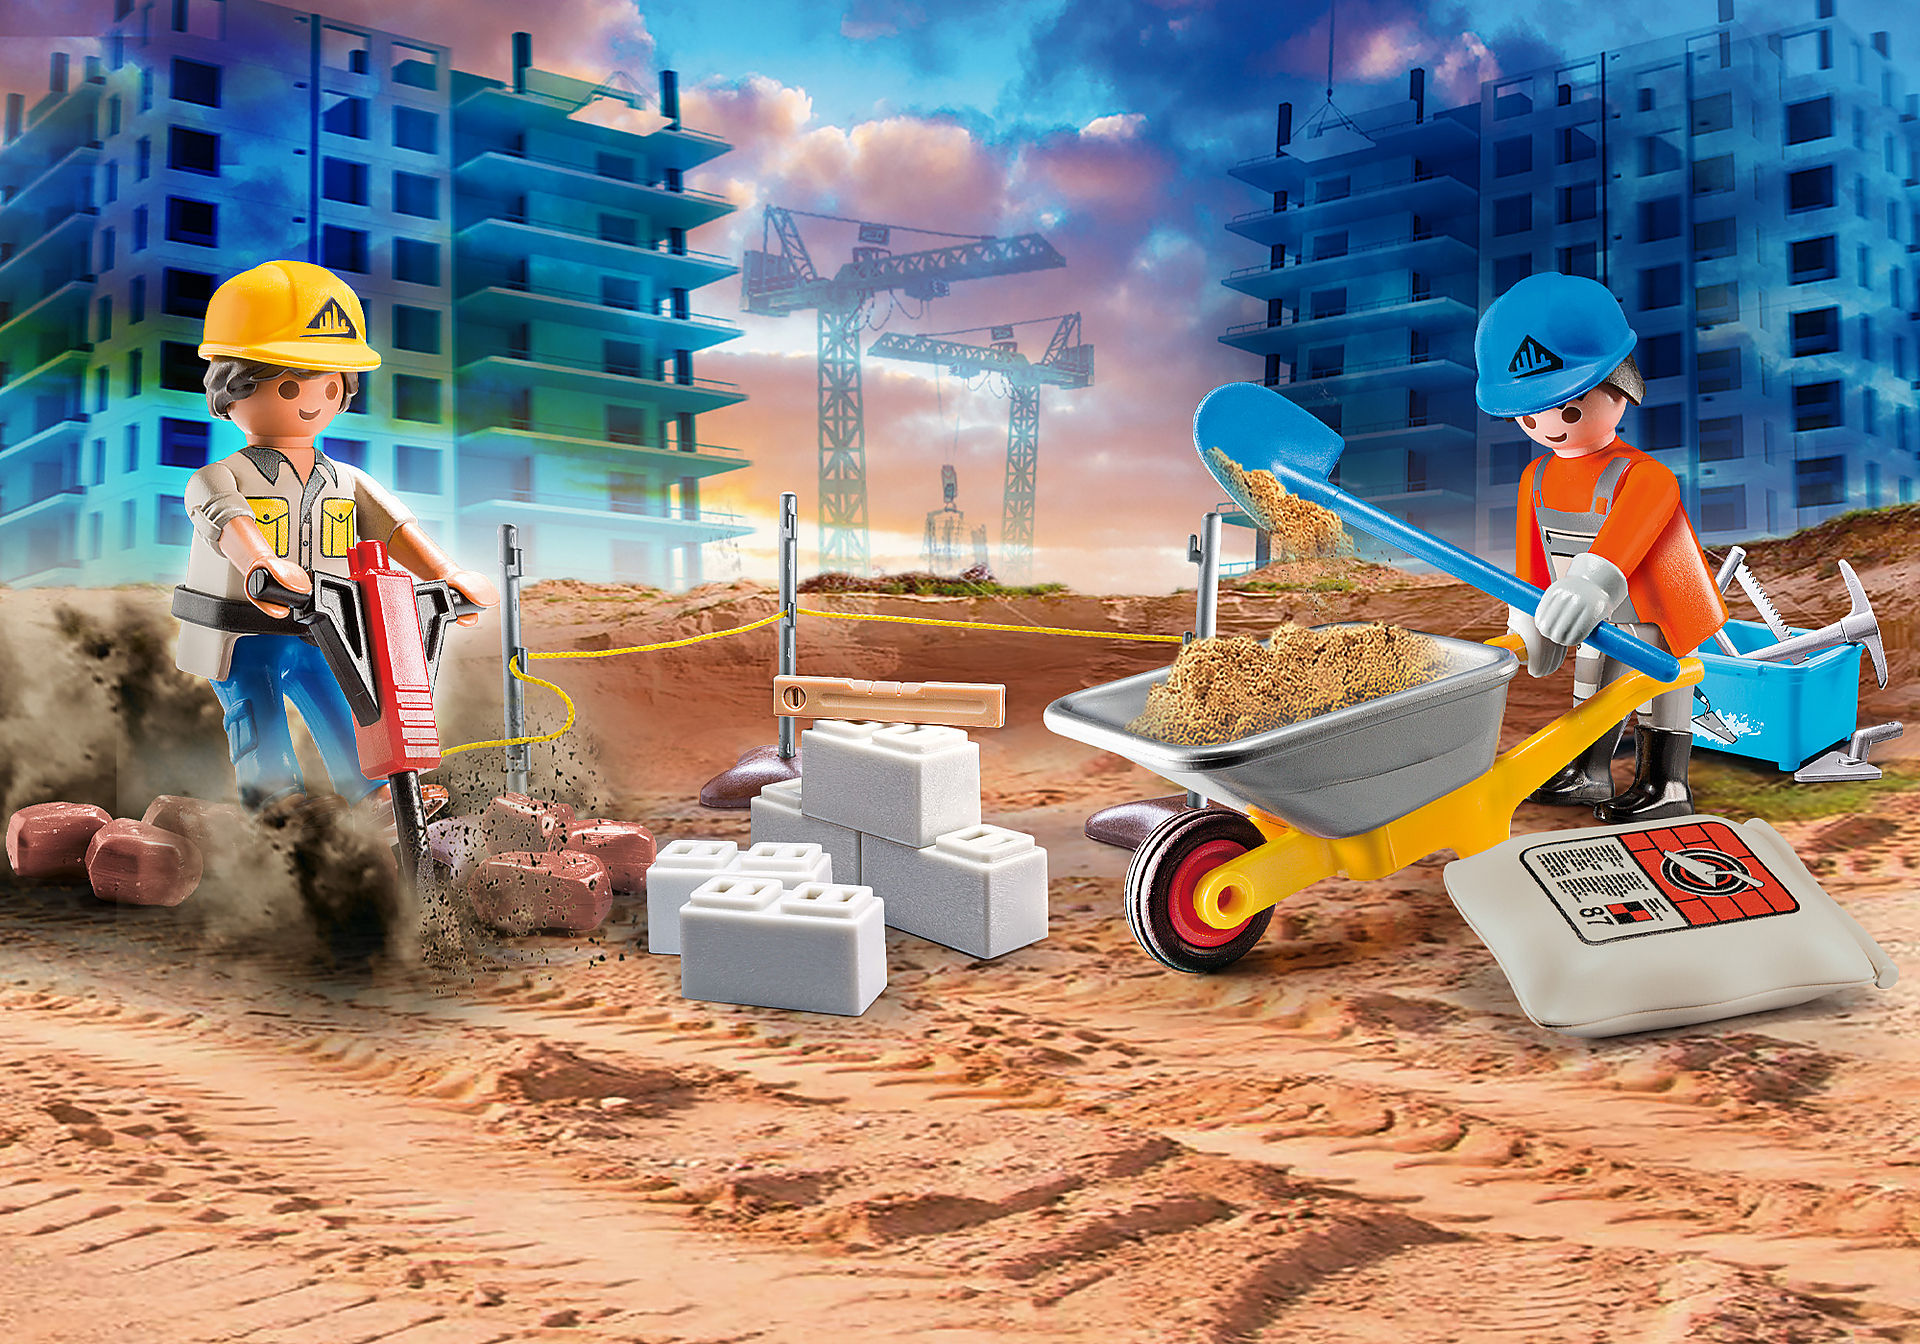 70528 Construction Site Carry Case zoom image1